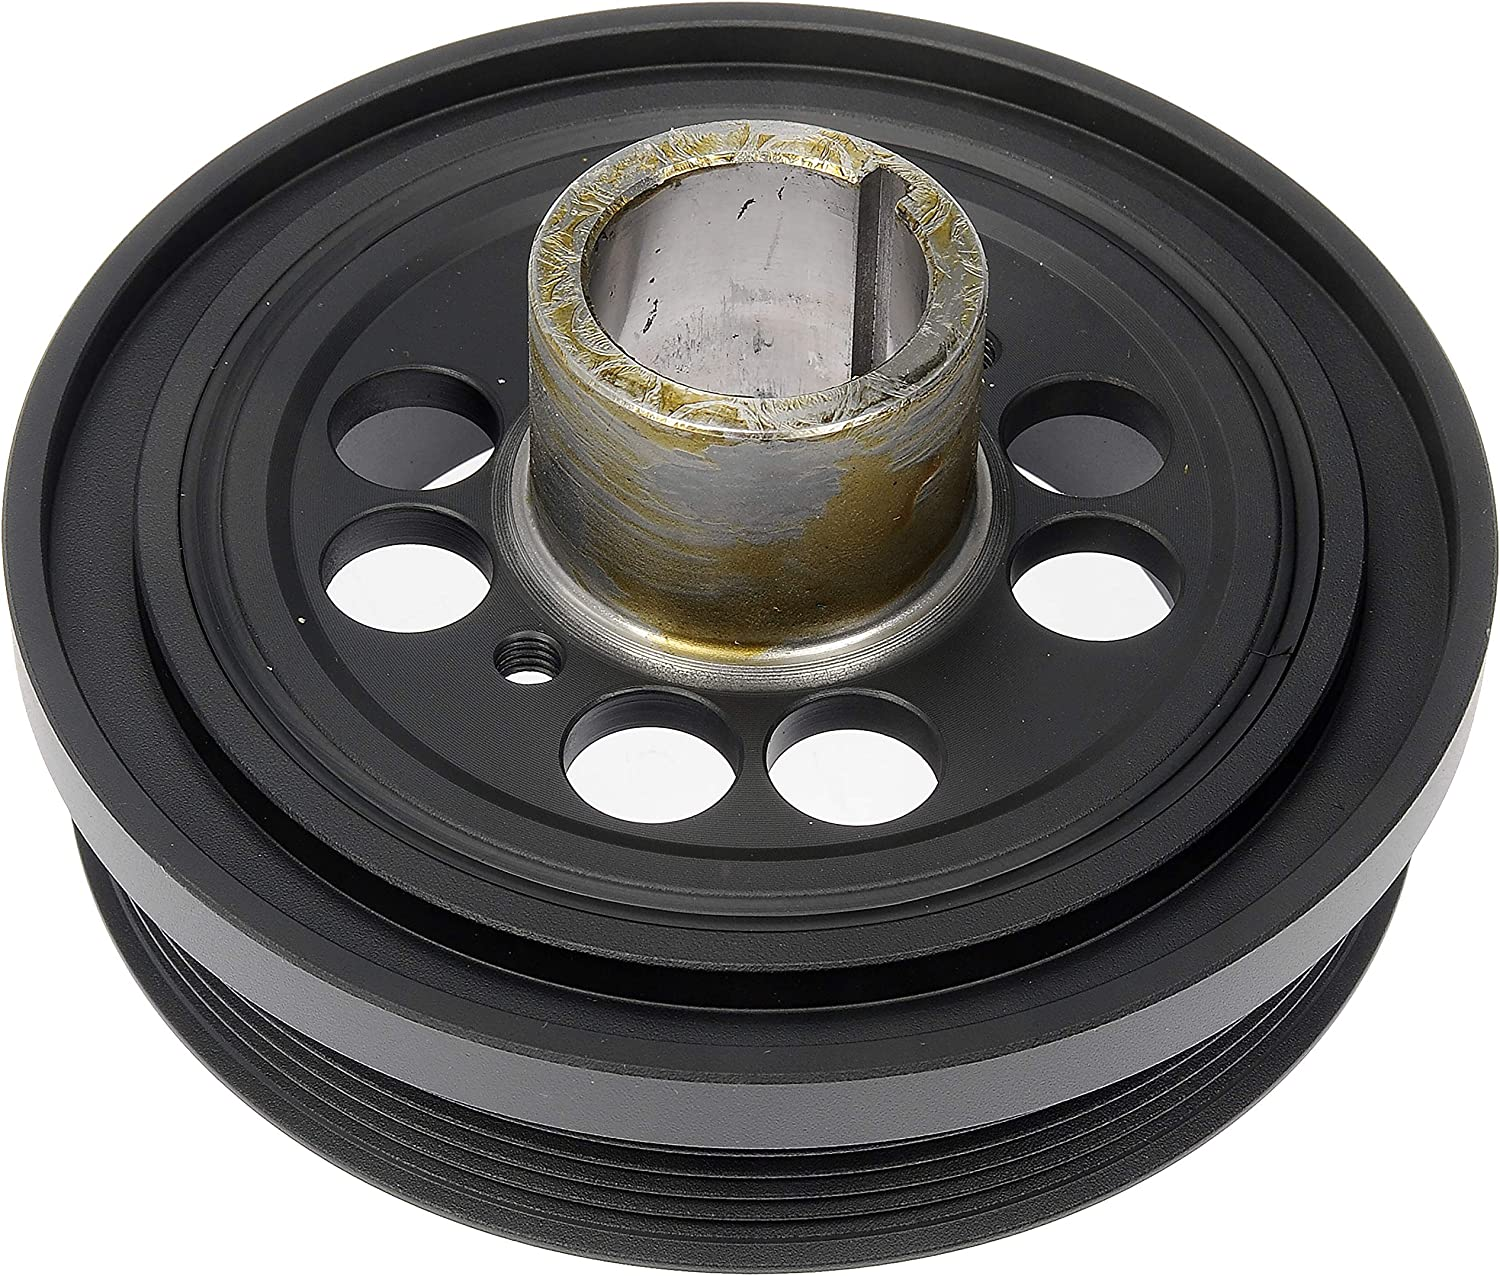 Dorman 594-744 Harmonic Balancer Assembly for Select Lexus Models